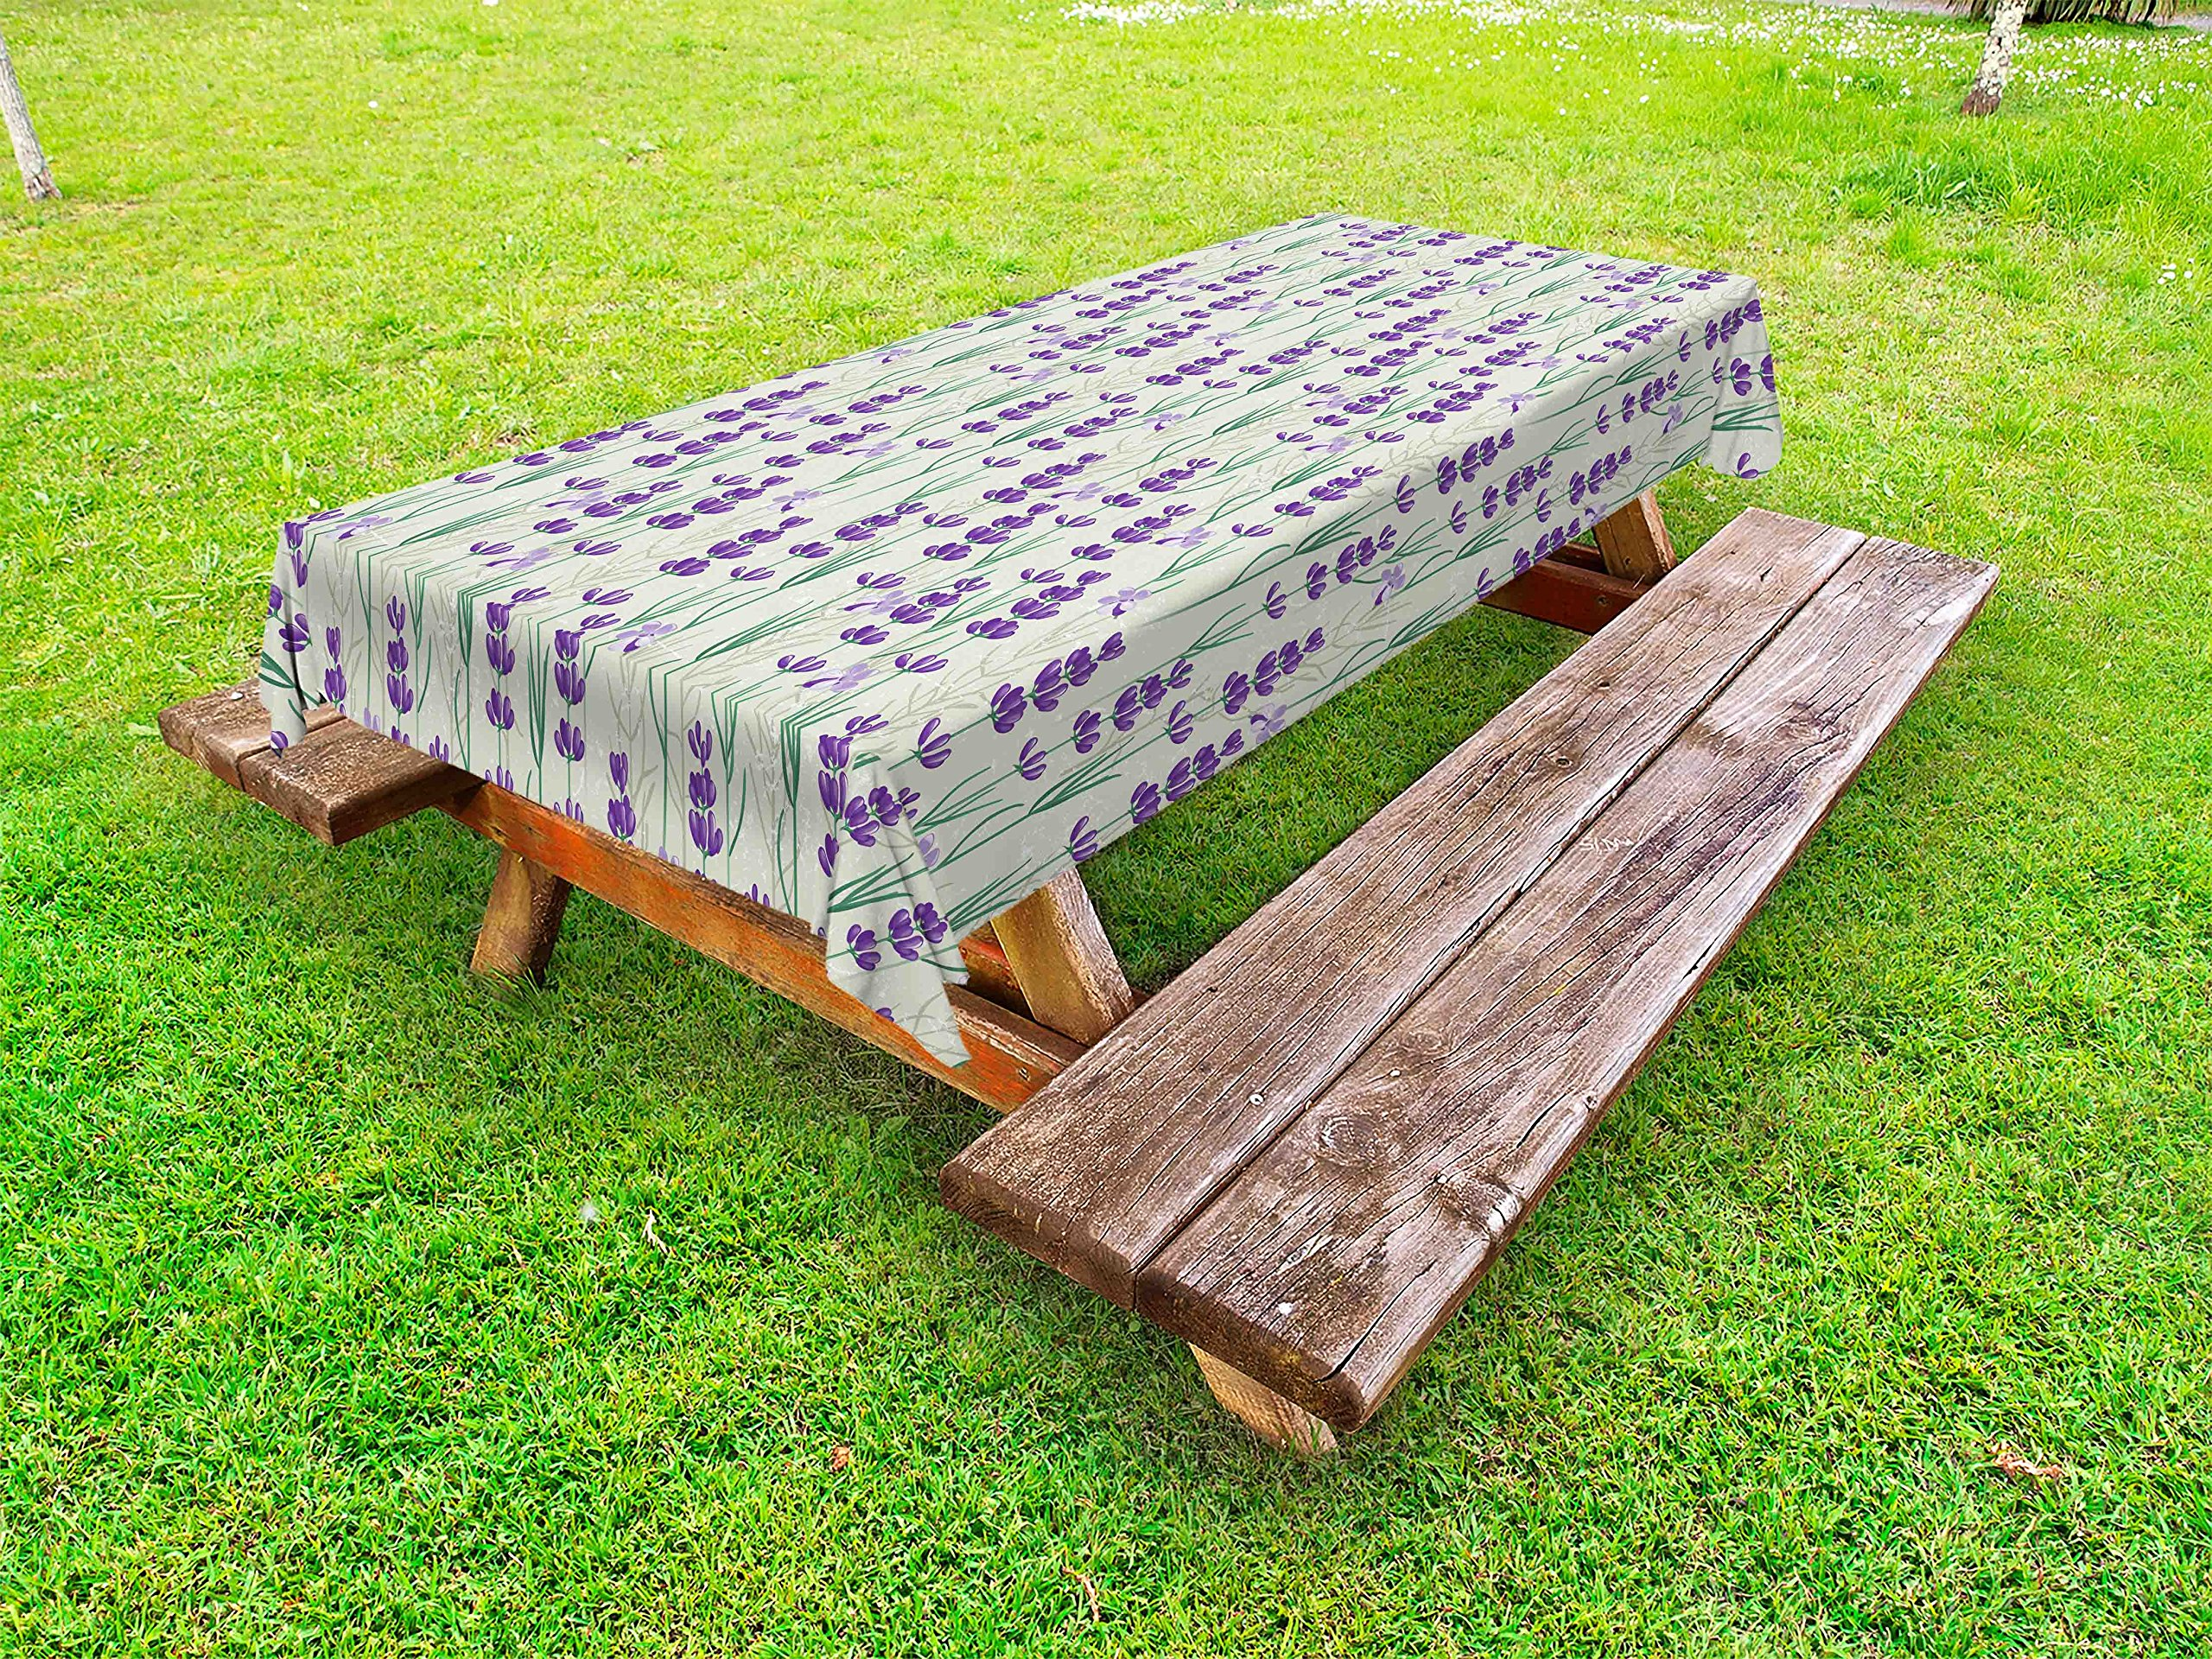 Ambesonne Lavender Outdoor Tablecloth, Botanical Pattern with Fresh Herbs Aromatherapy Spa Theme, Decorative Washable Picnic Table Cloth, 58 X 120 inches, Pale Sage Green Violet and Green